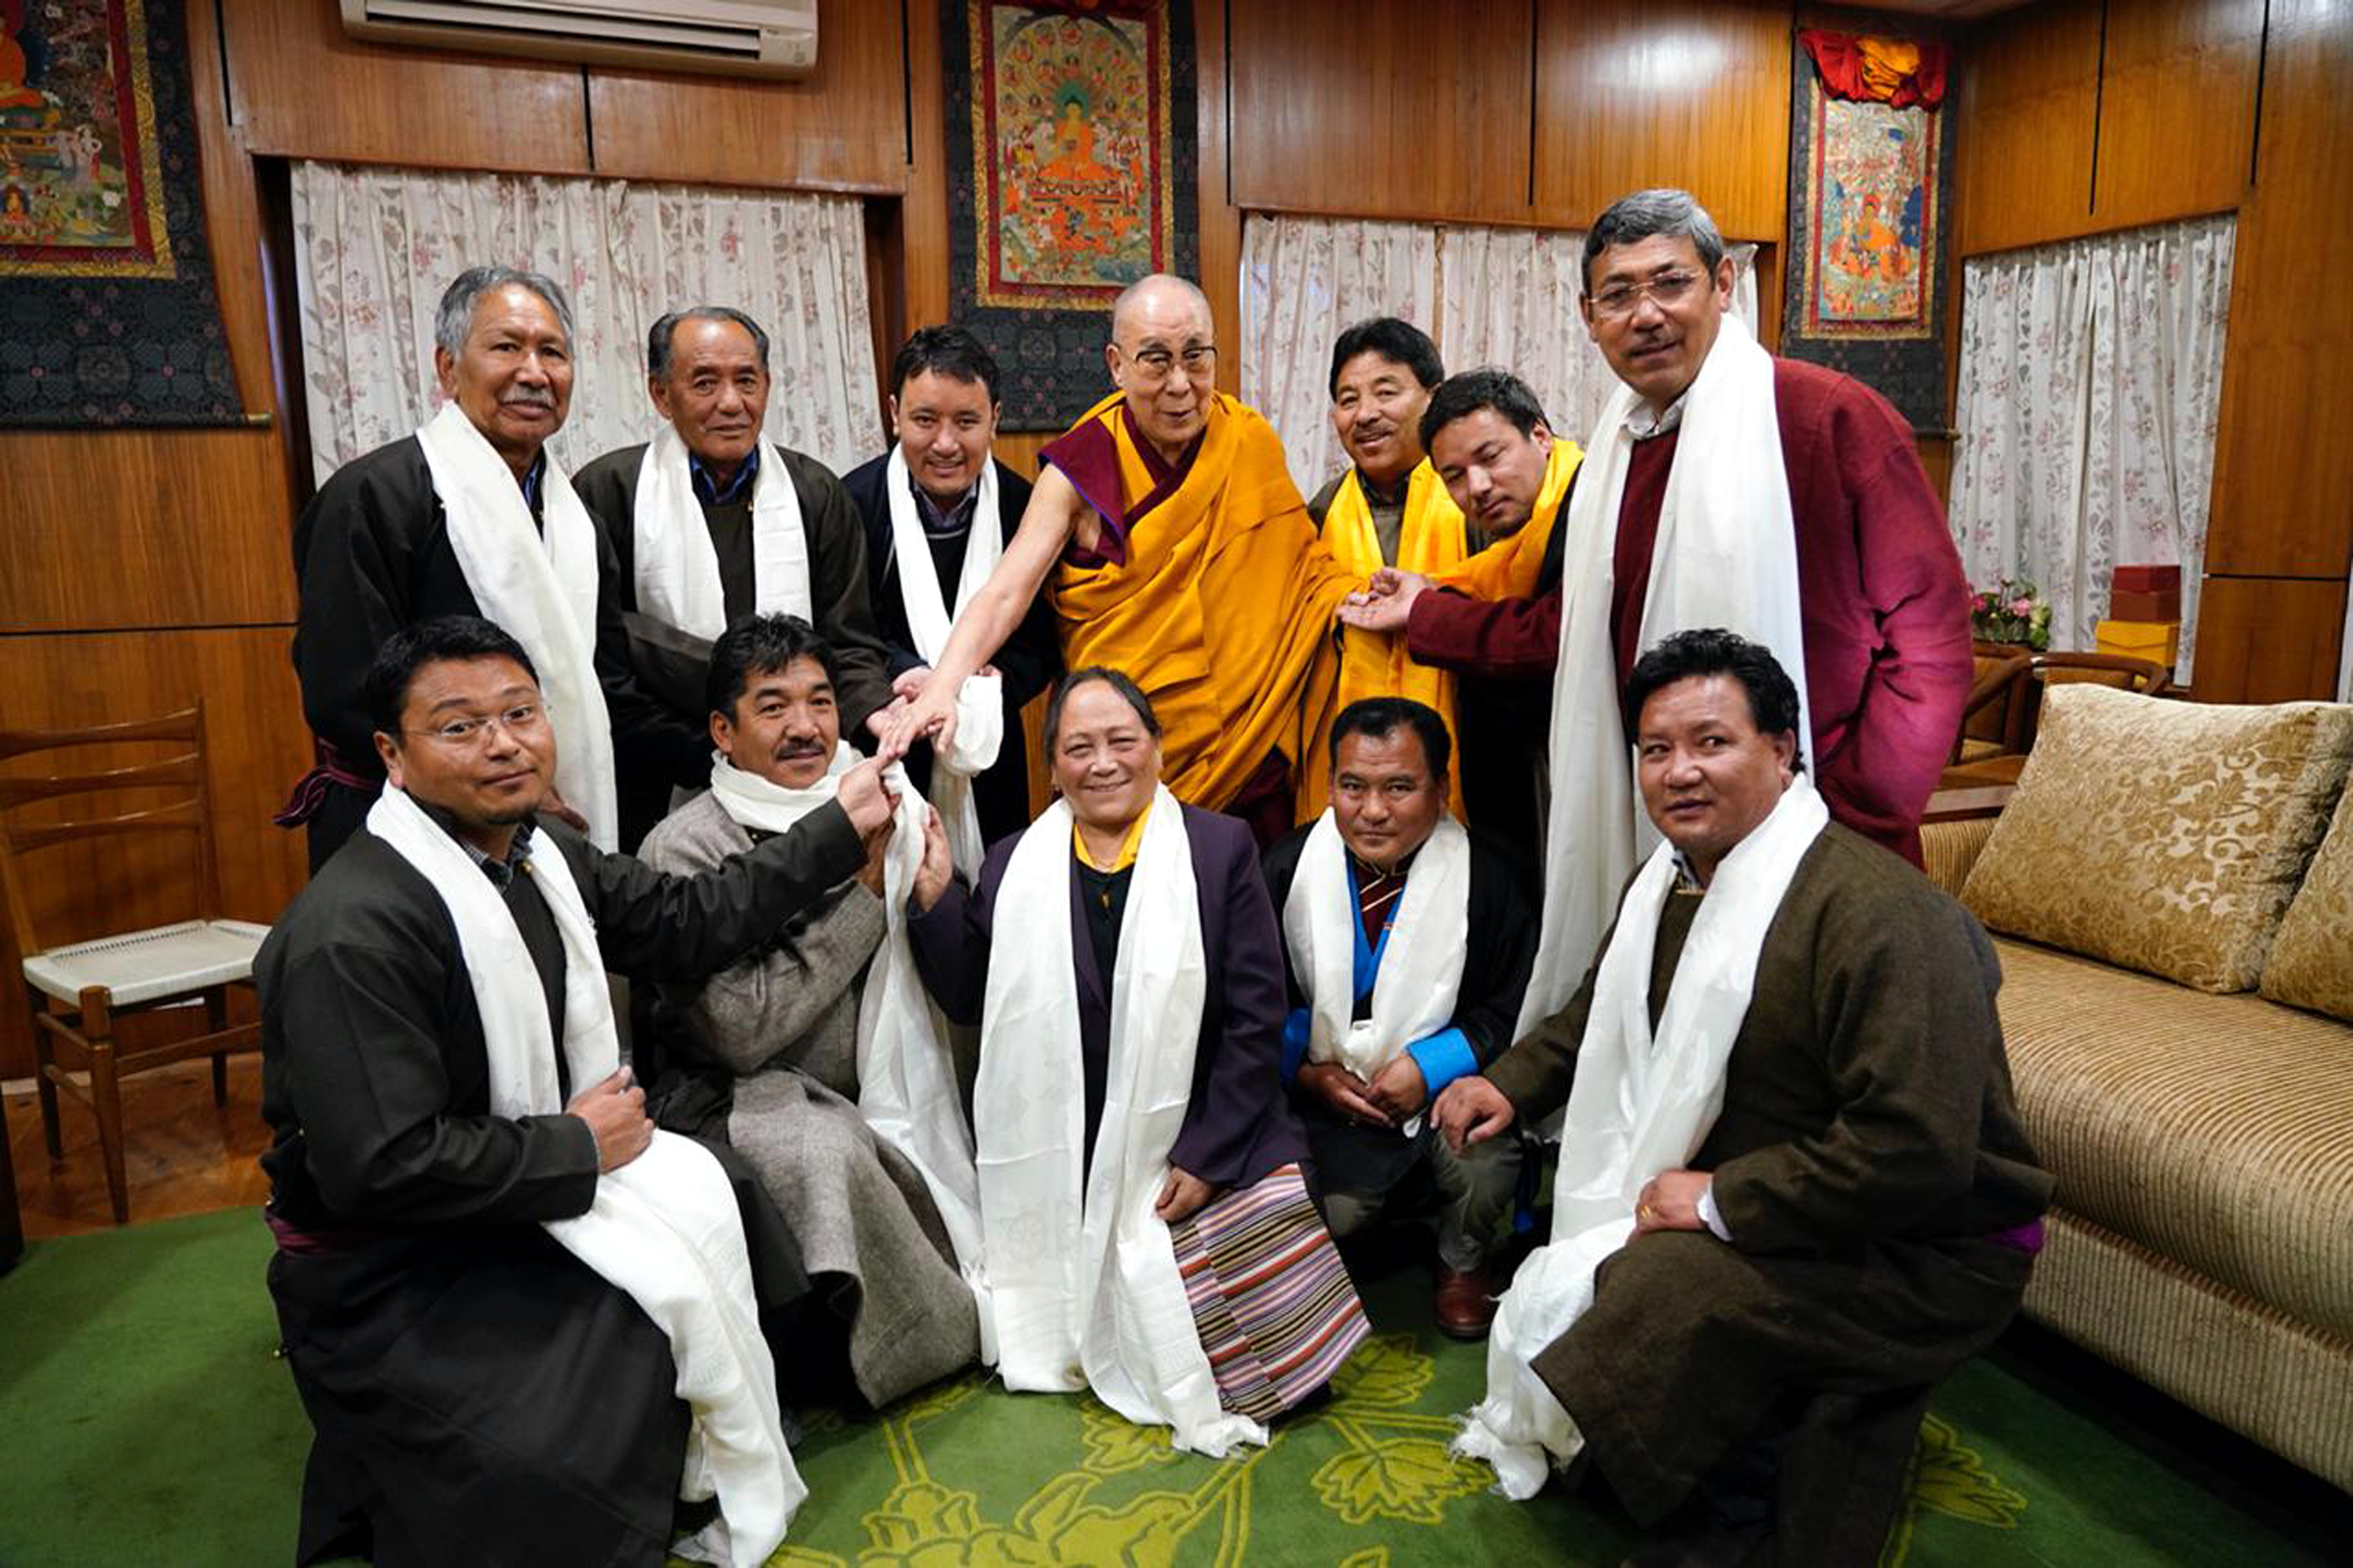 Members of LAHDC Leh meeting with Dalai Lama at Dharamshala.